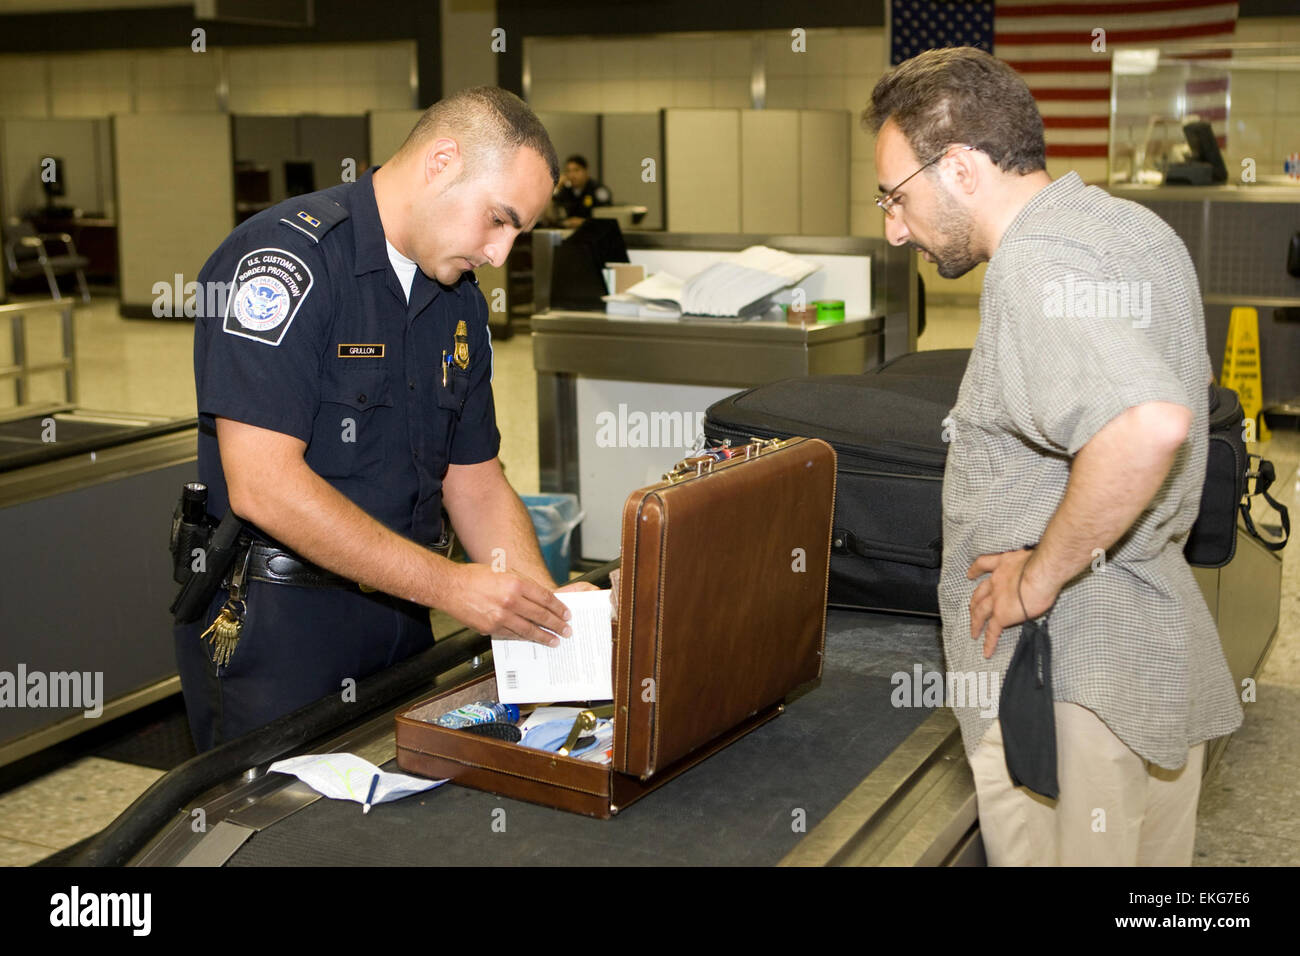 customs officer airport stock photos customs officer airport cbp officer inspects a passengers lugggage at an airport james tourtellotte stock image